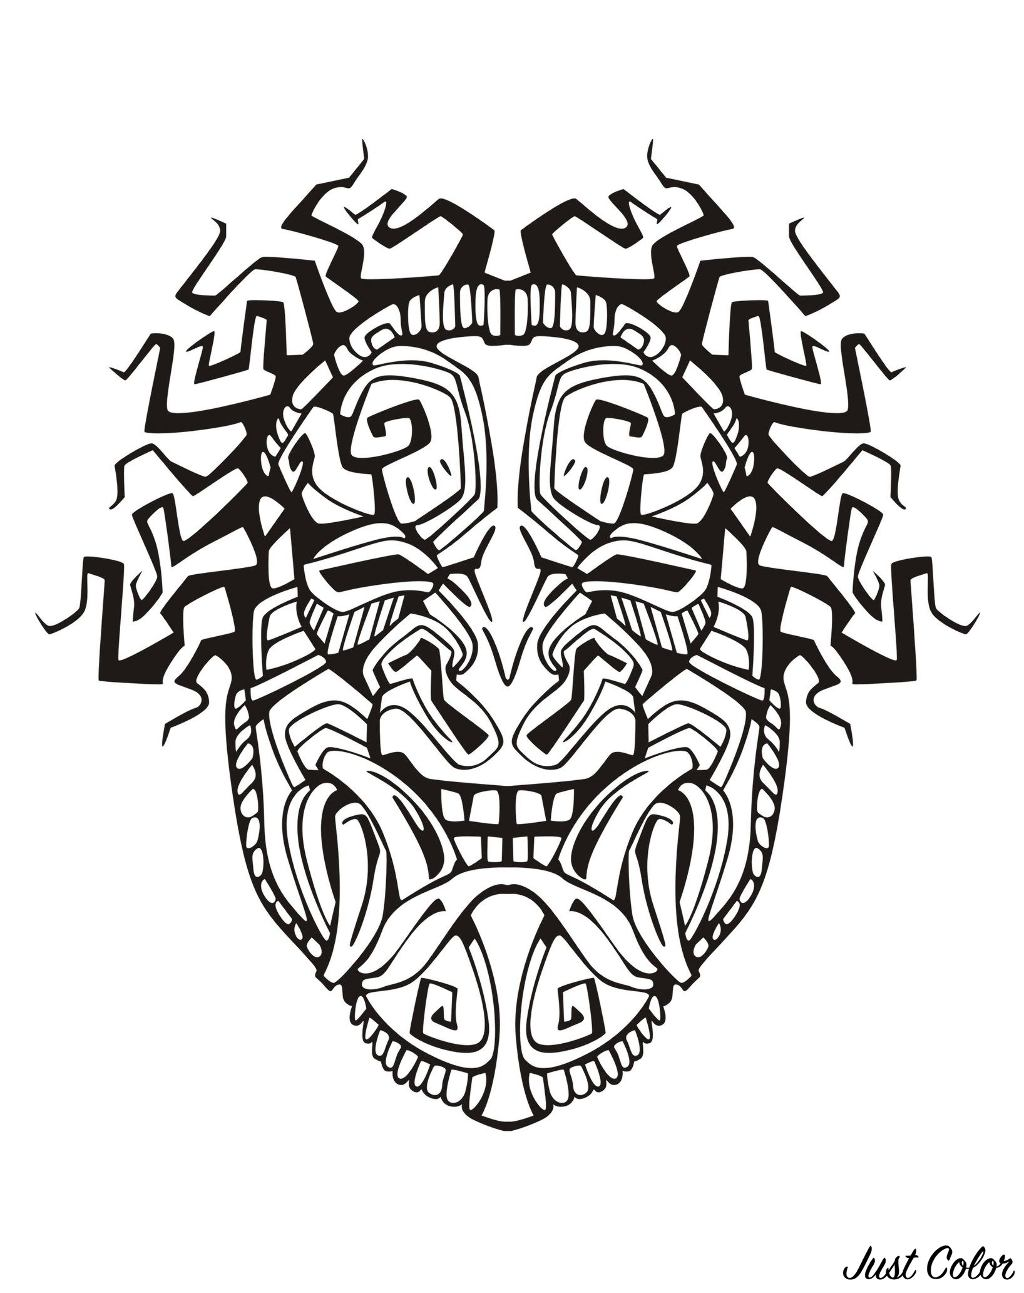 Mask inspired by Aztecs, Mayans and Incas - 1